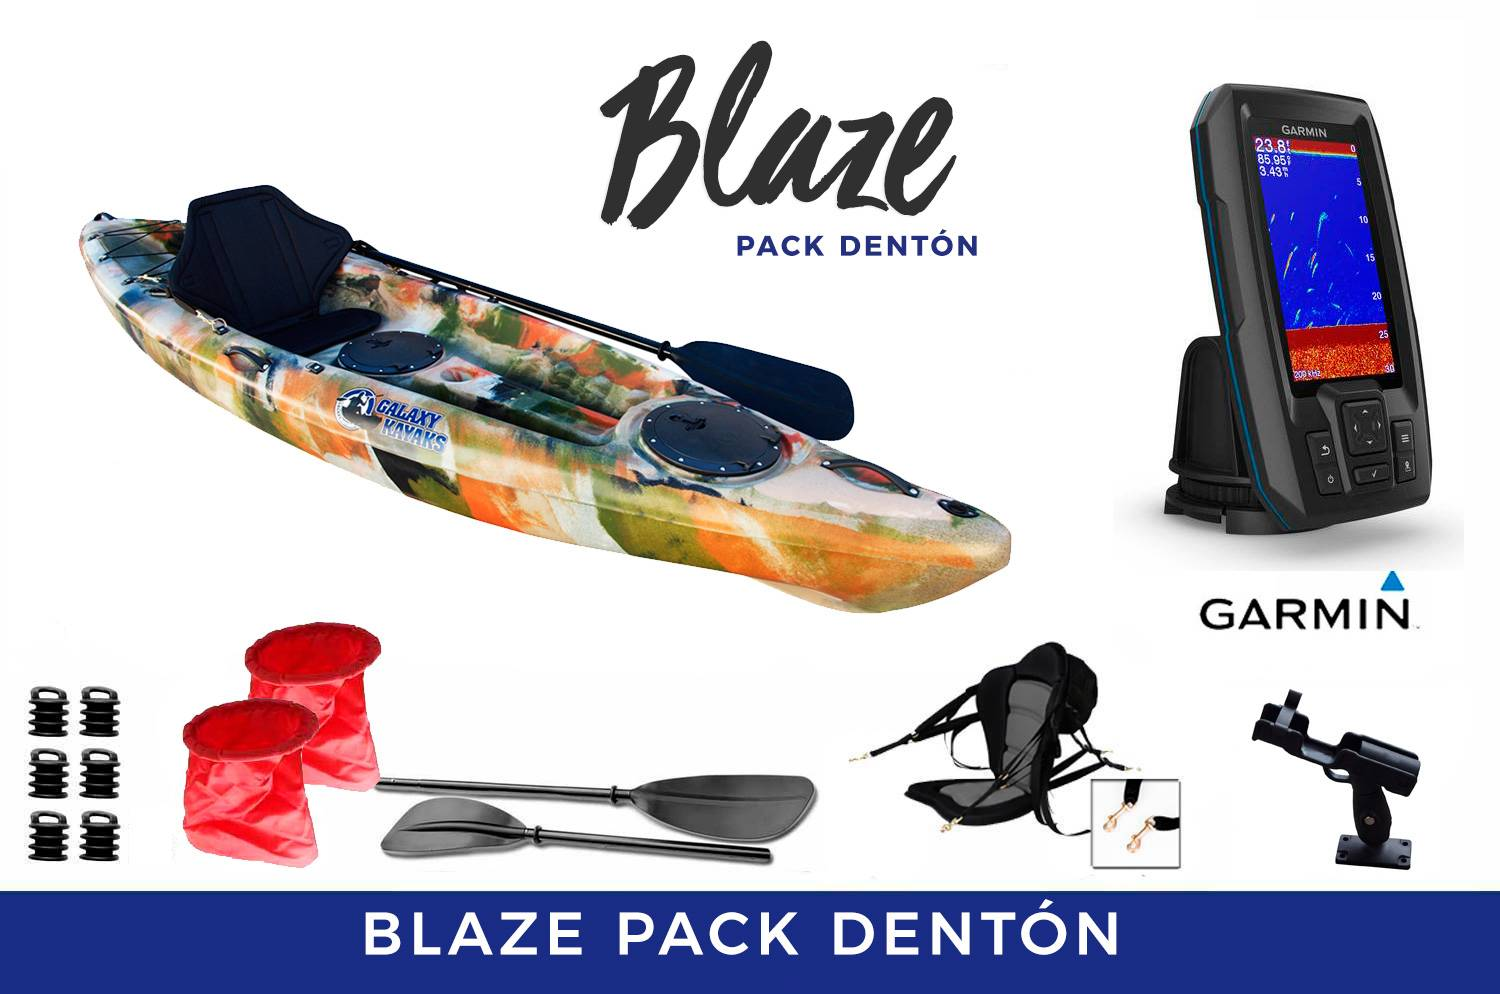 Blaze Fisher Pack Dentón